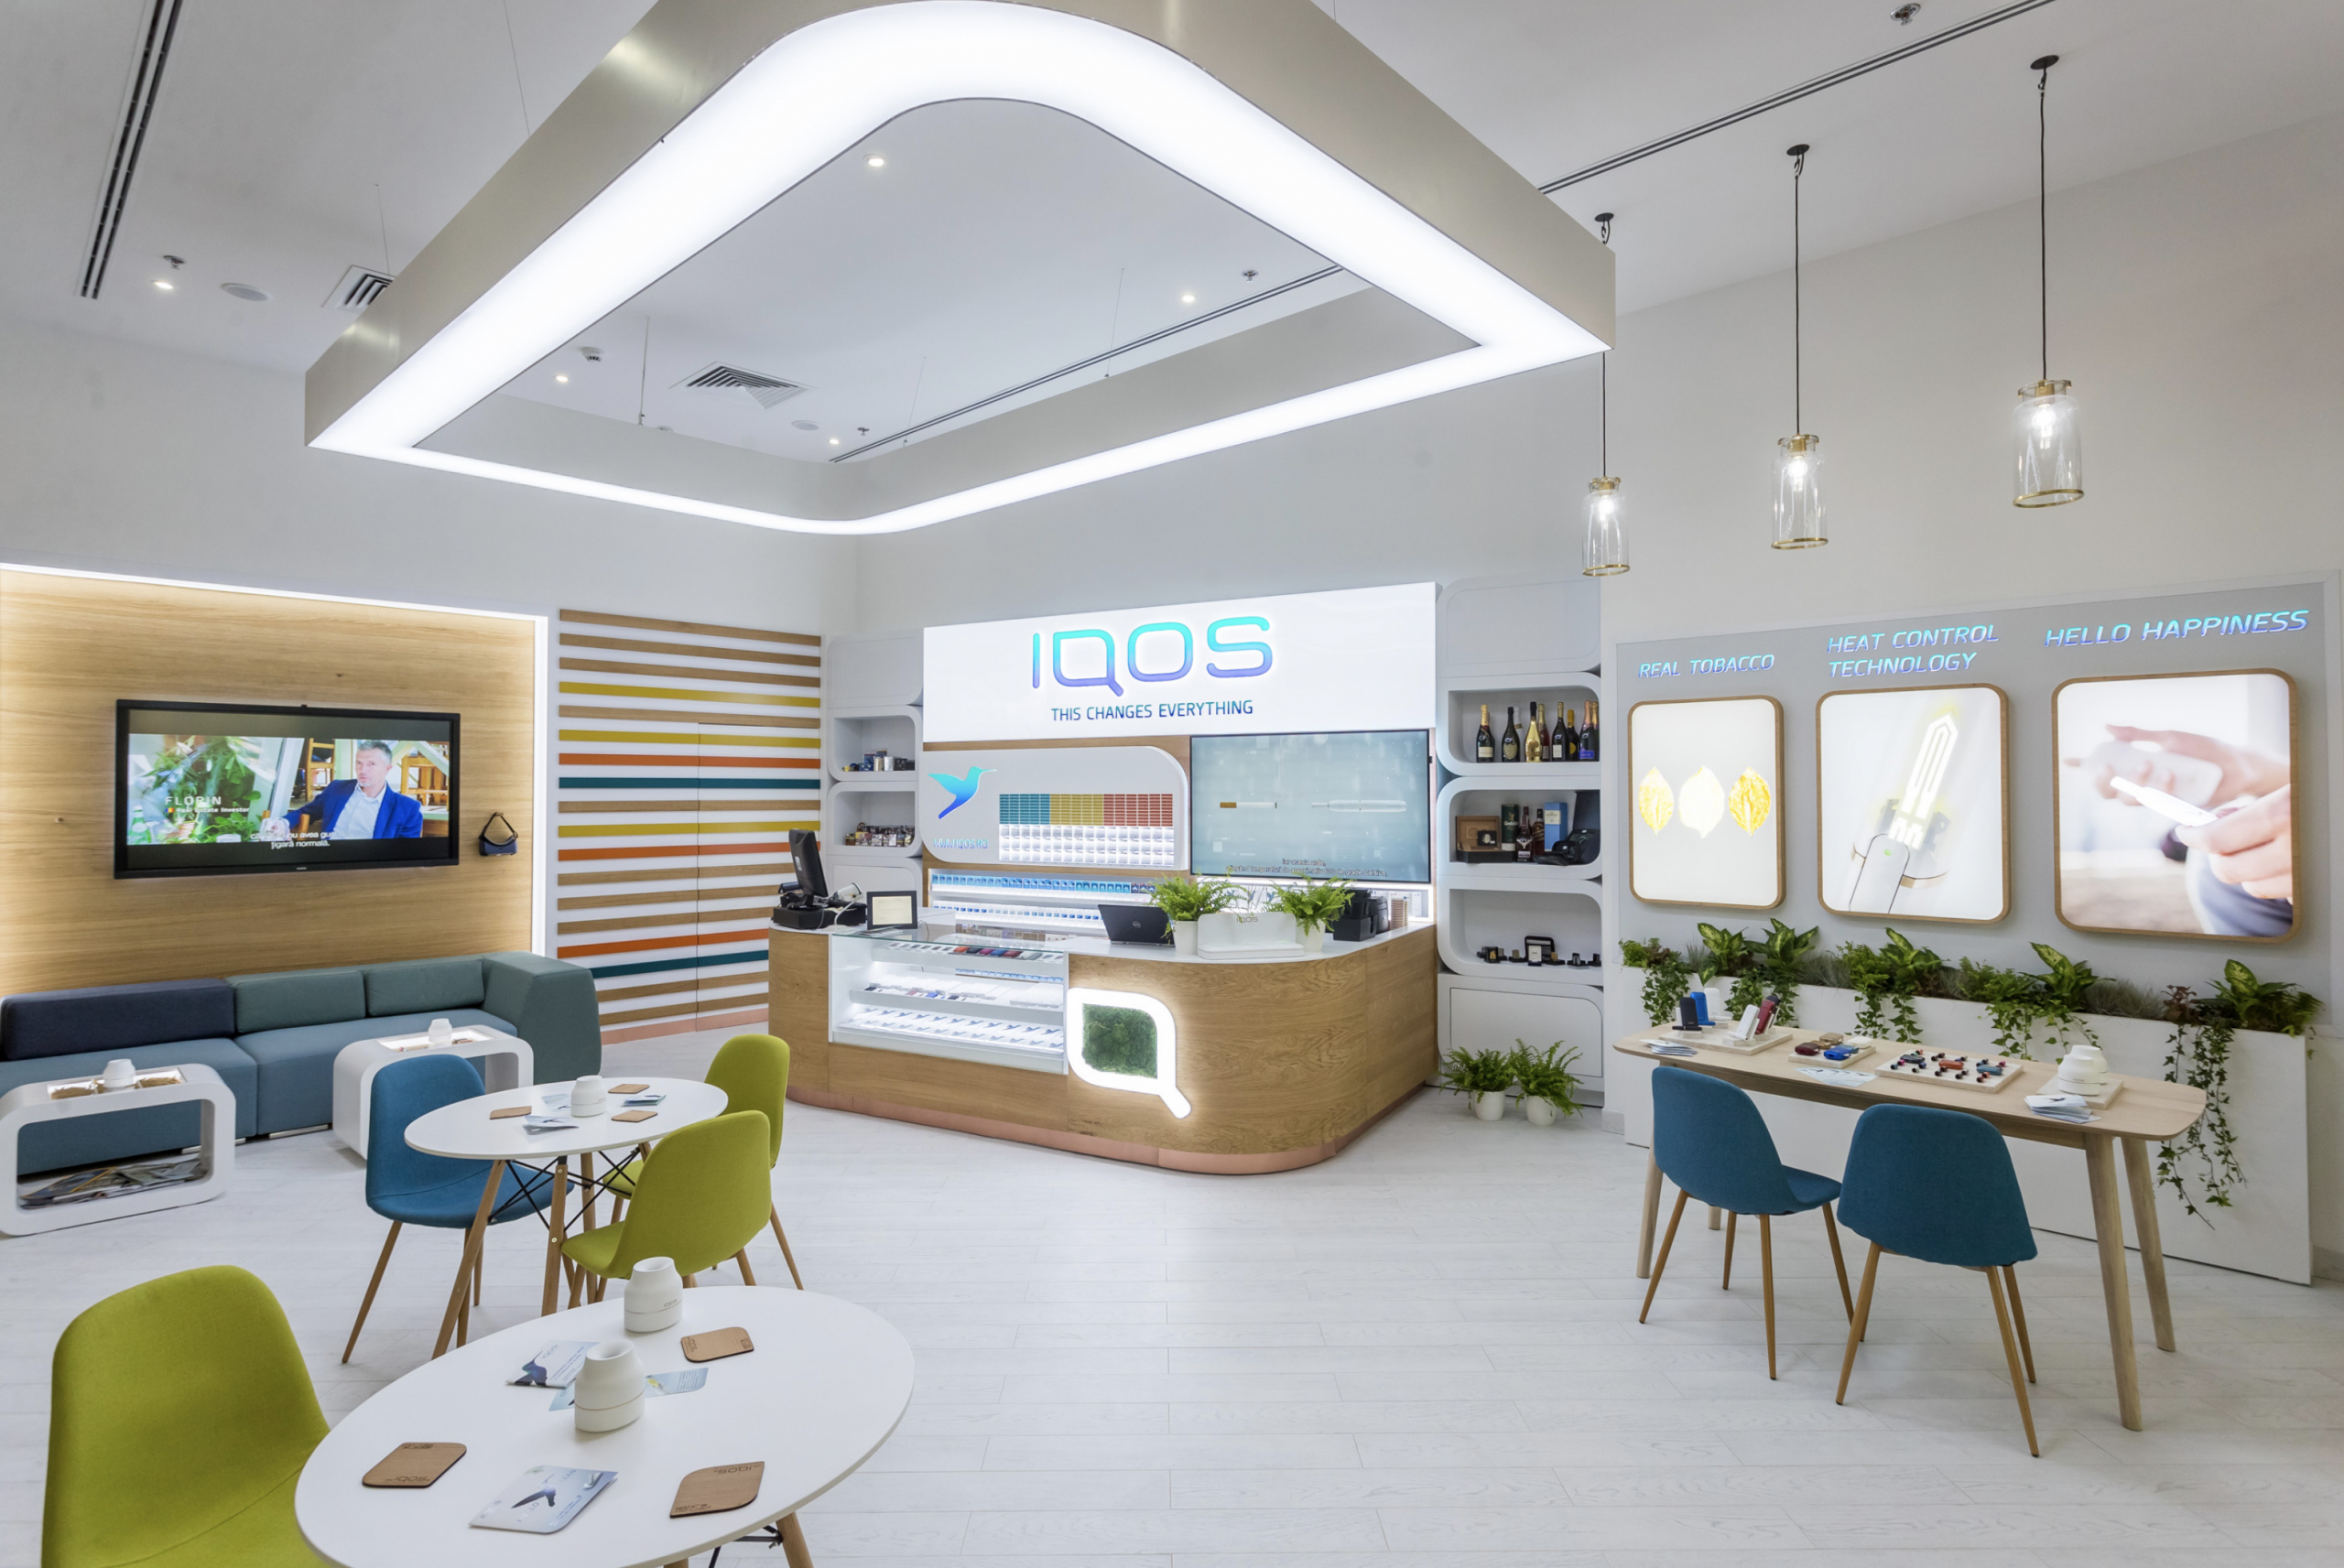 How Much Does IQOS Cost Quick Price Guide - eri